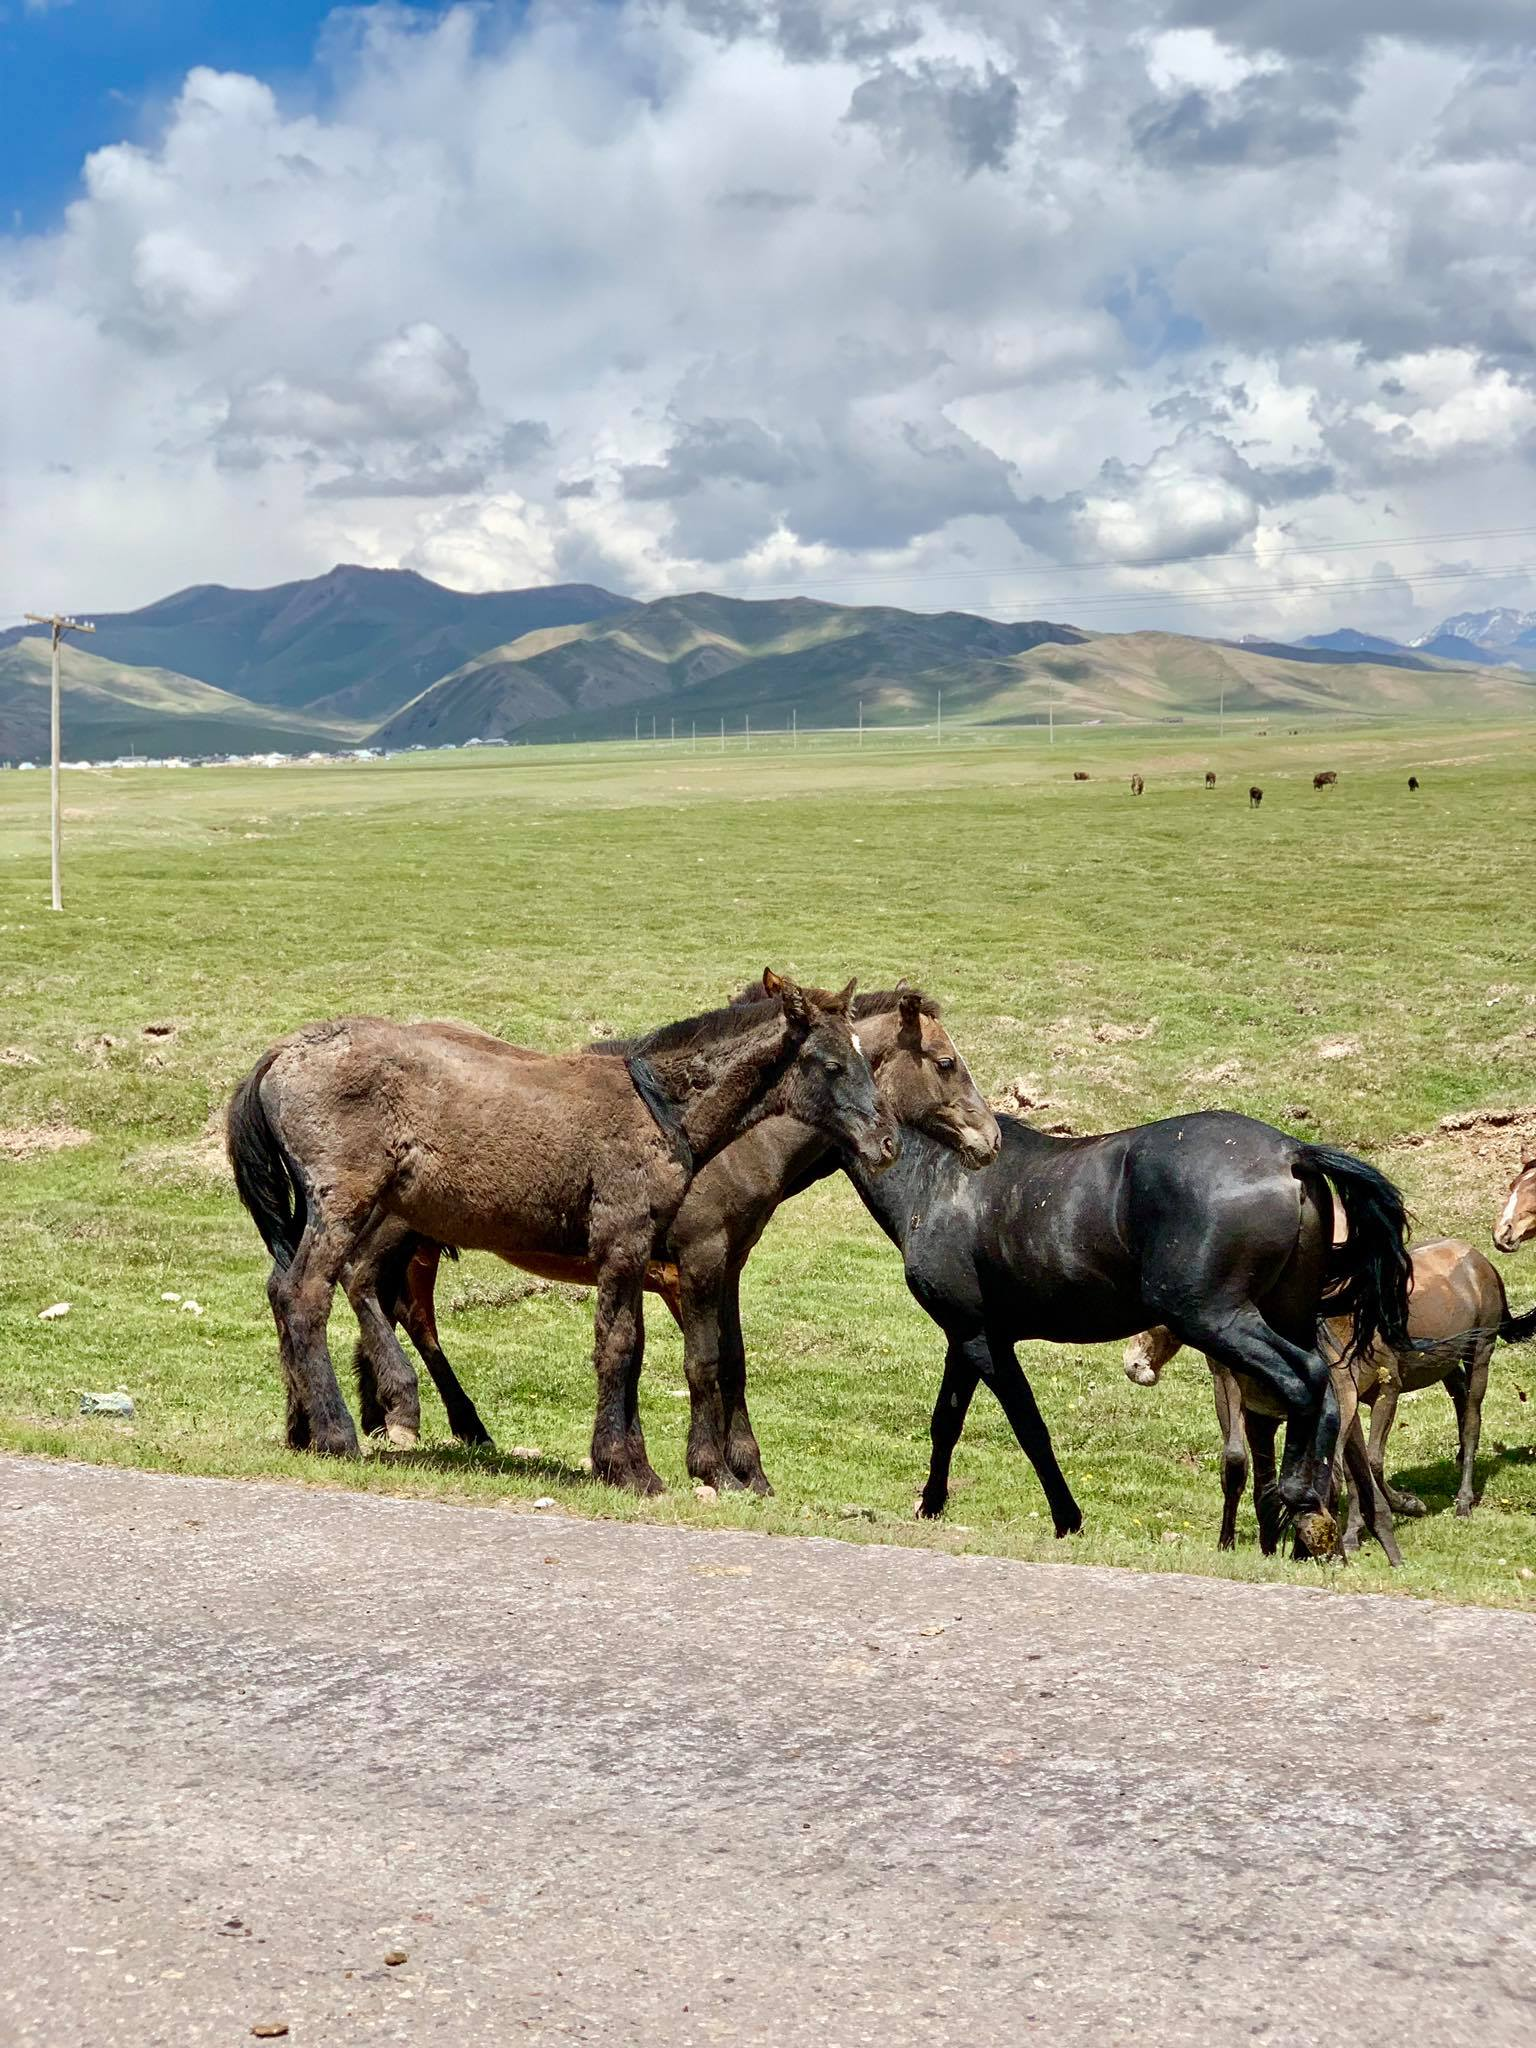 Kach Solo Travels in 2019 Hello from KYRGYZSTAN, my 128th country2.jpg